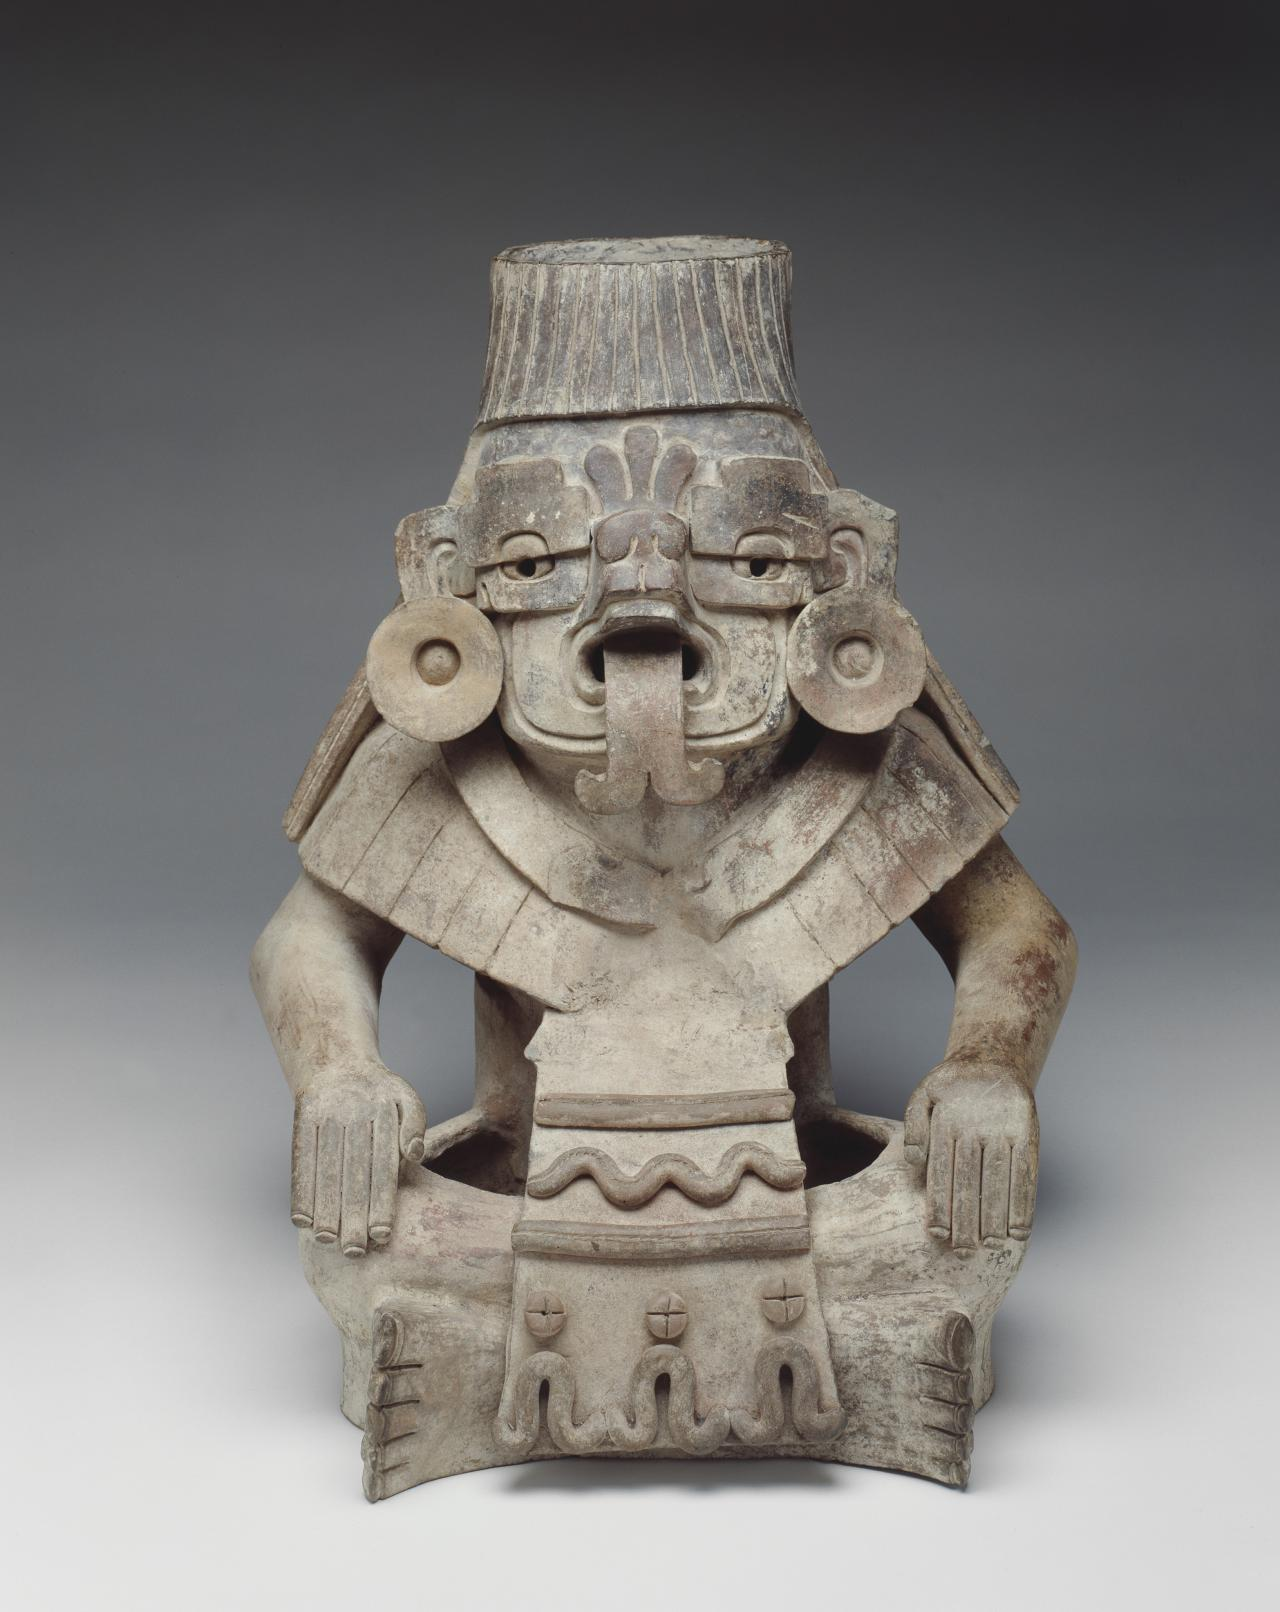 Urn of Cocijo, god of rain